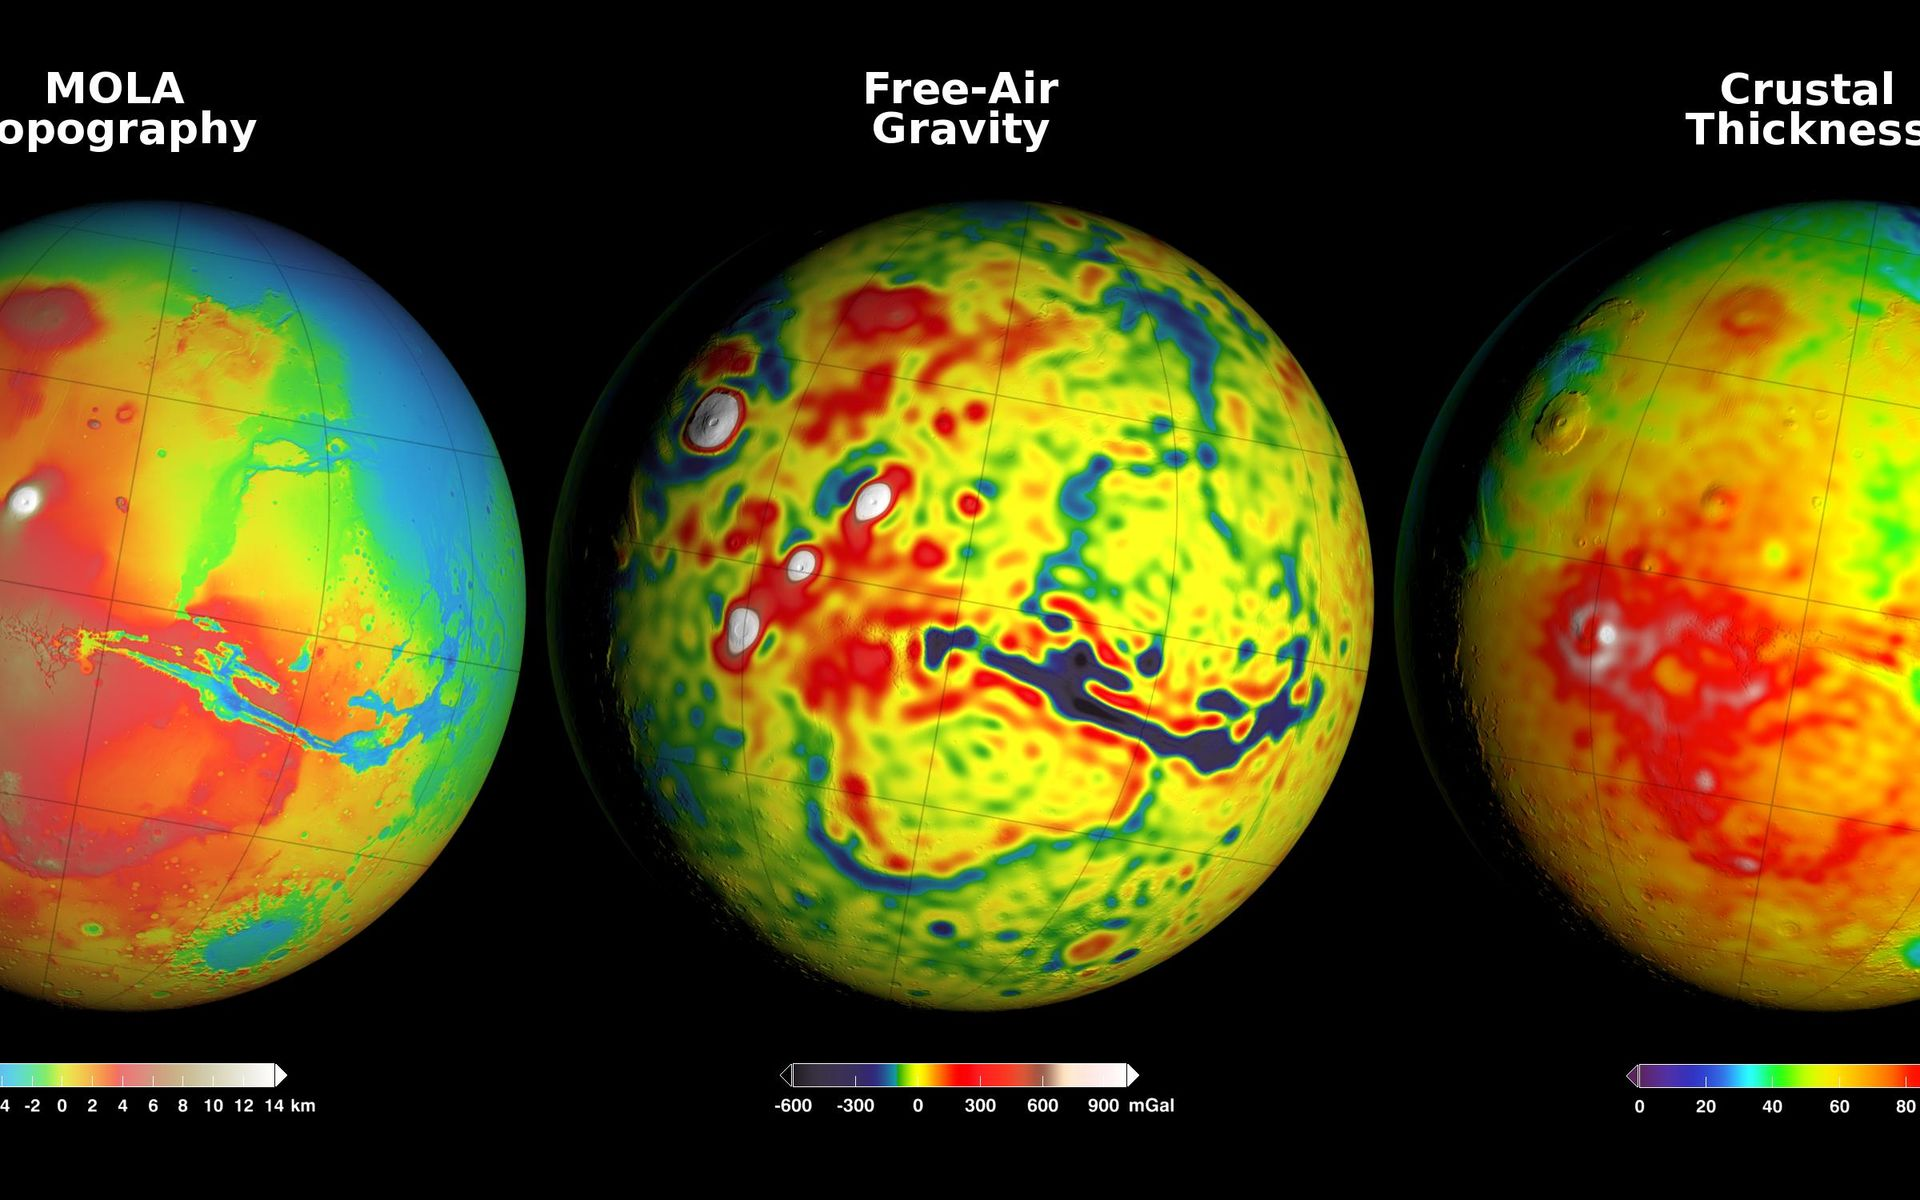 Space images using gravity and topography to map mars crustal 1920 x 1200 gumiabroncs Choice Image